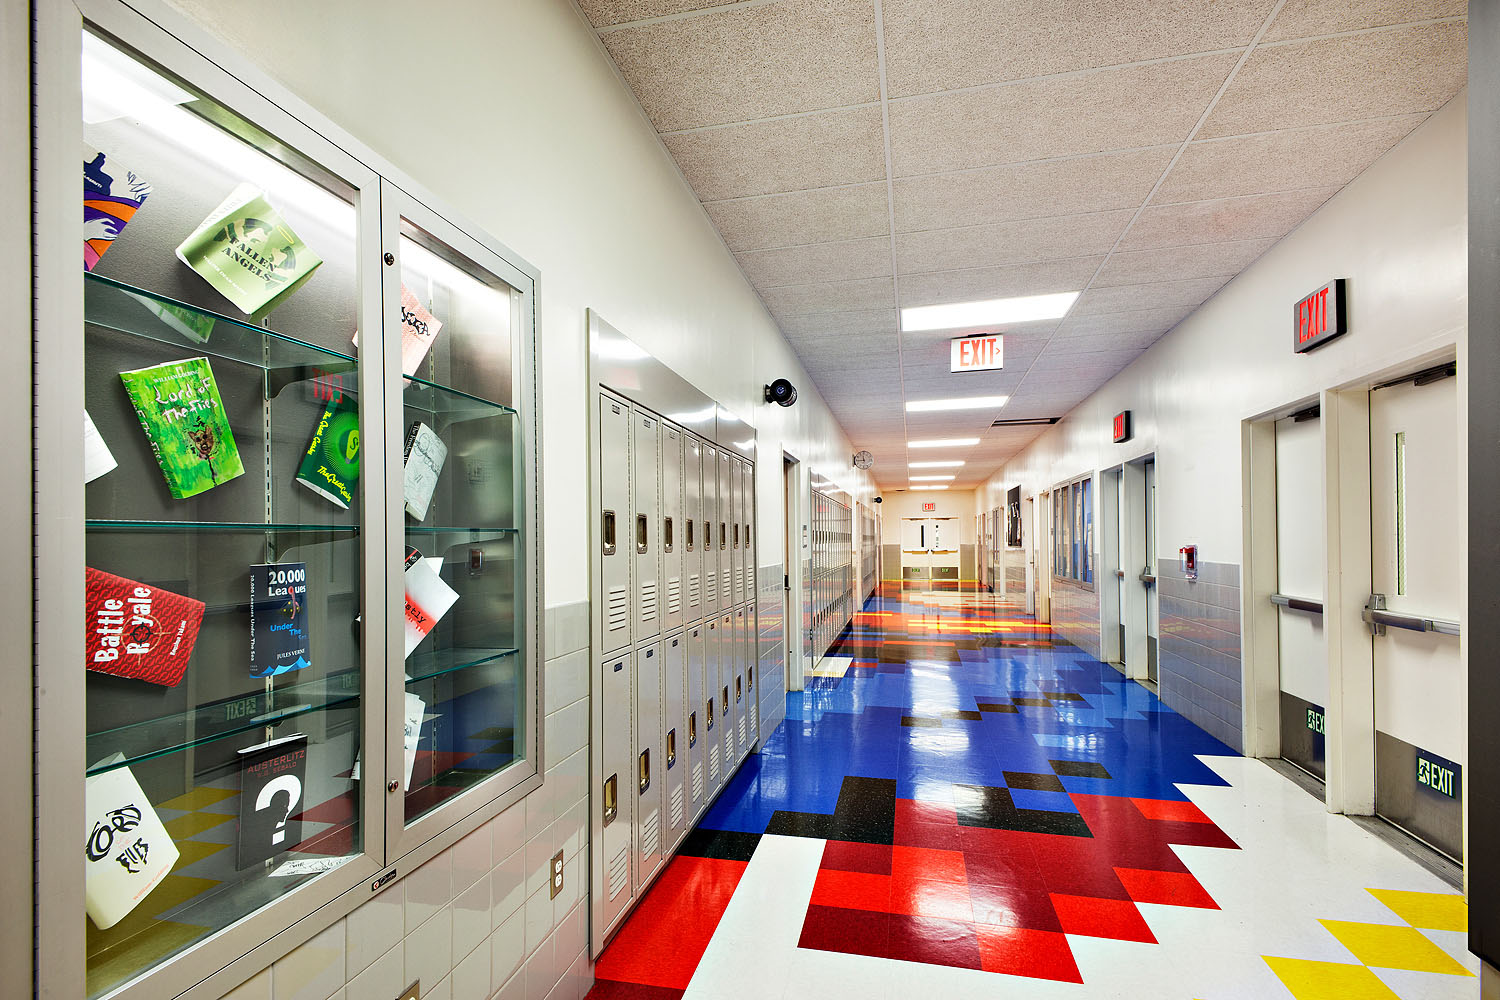 231E56th_PS59_1-4_hall1.jpg